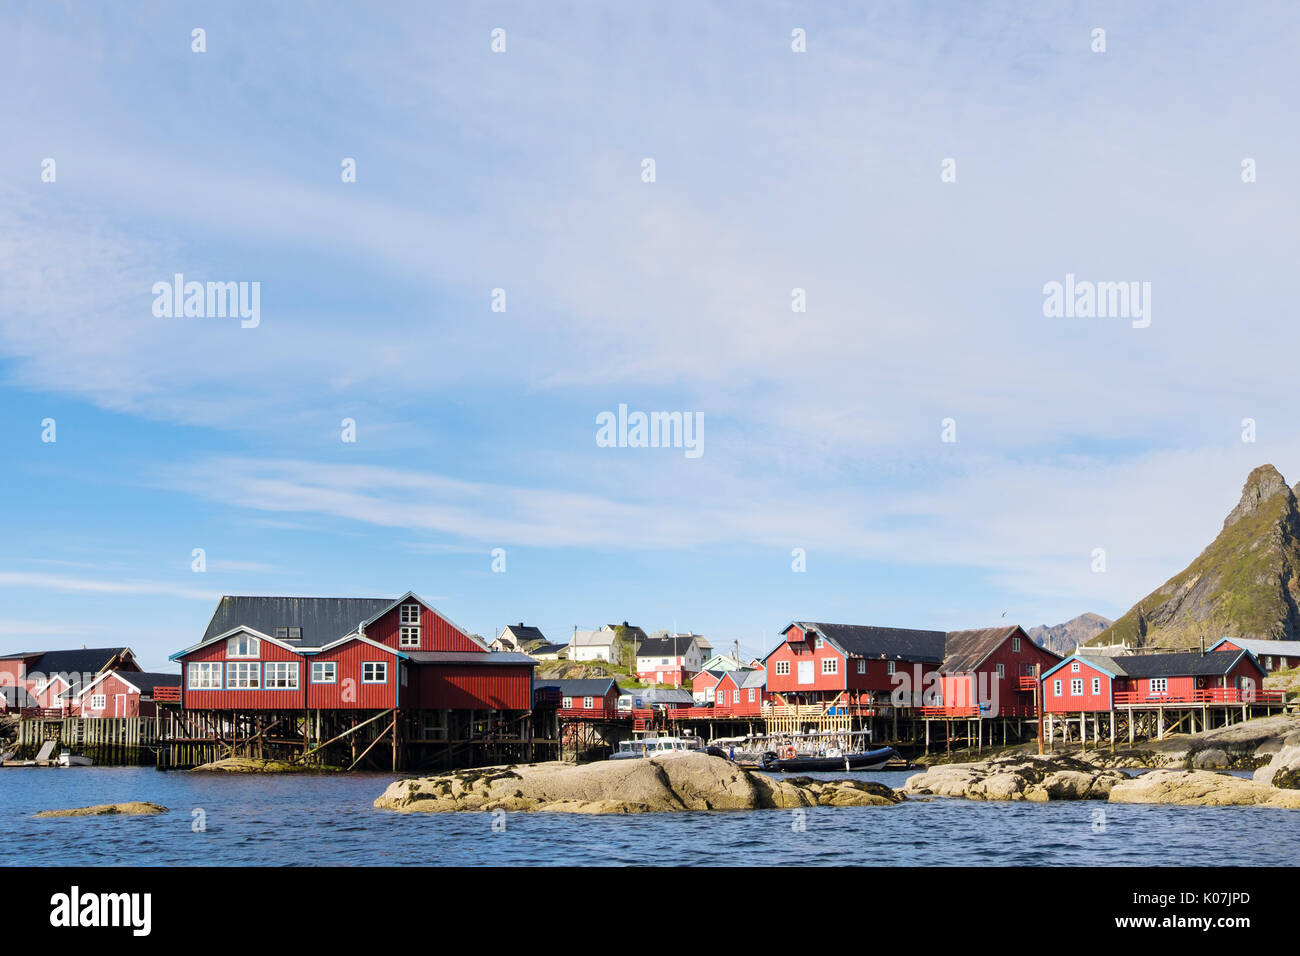 Red wooden fishermen's huts and buildings on stilts by water in fishing village of Å, Moskenes, Moskenesøya Island, Stock Photo